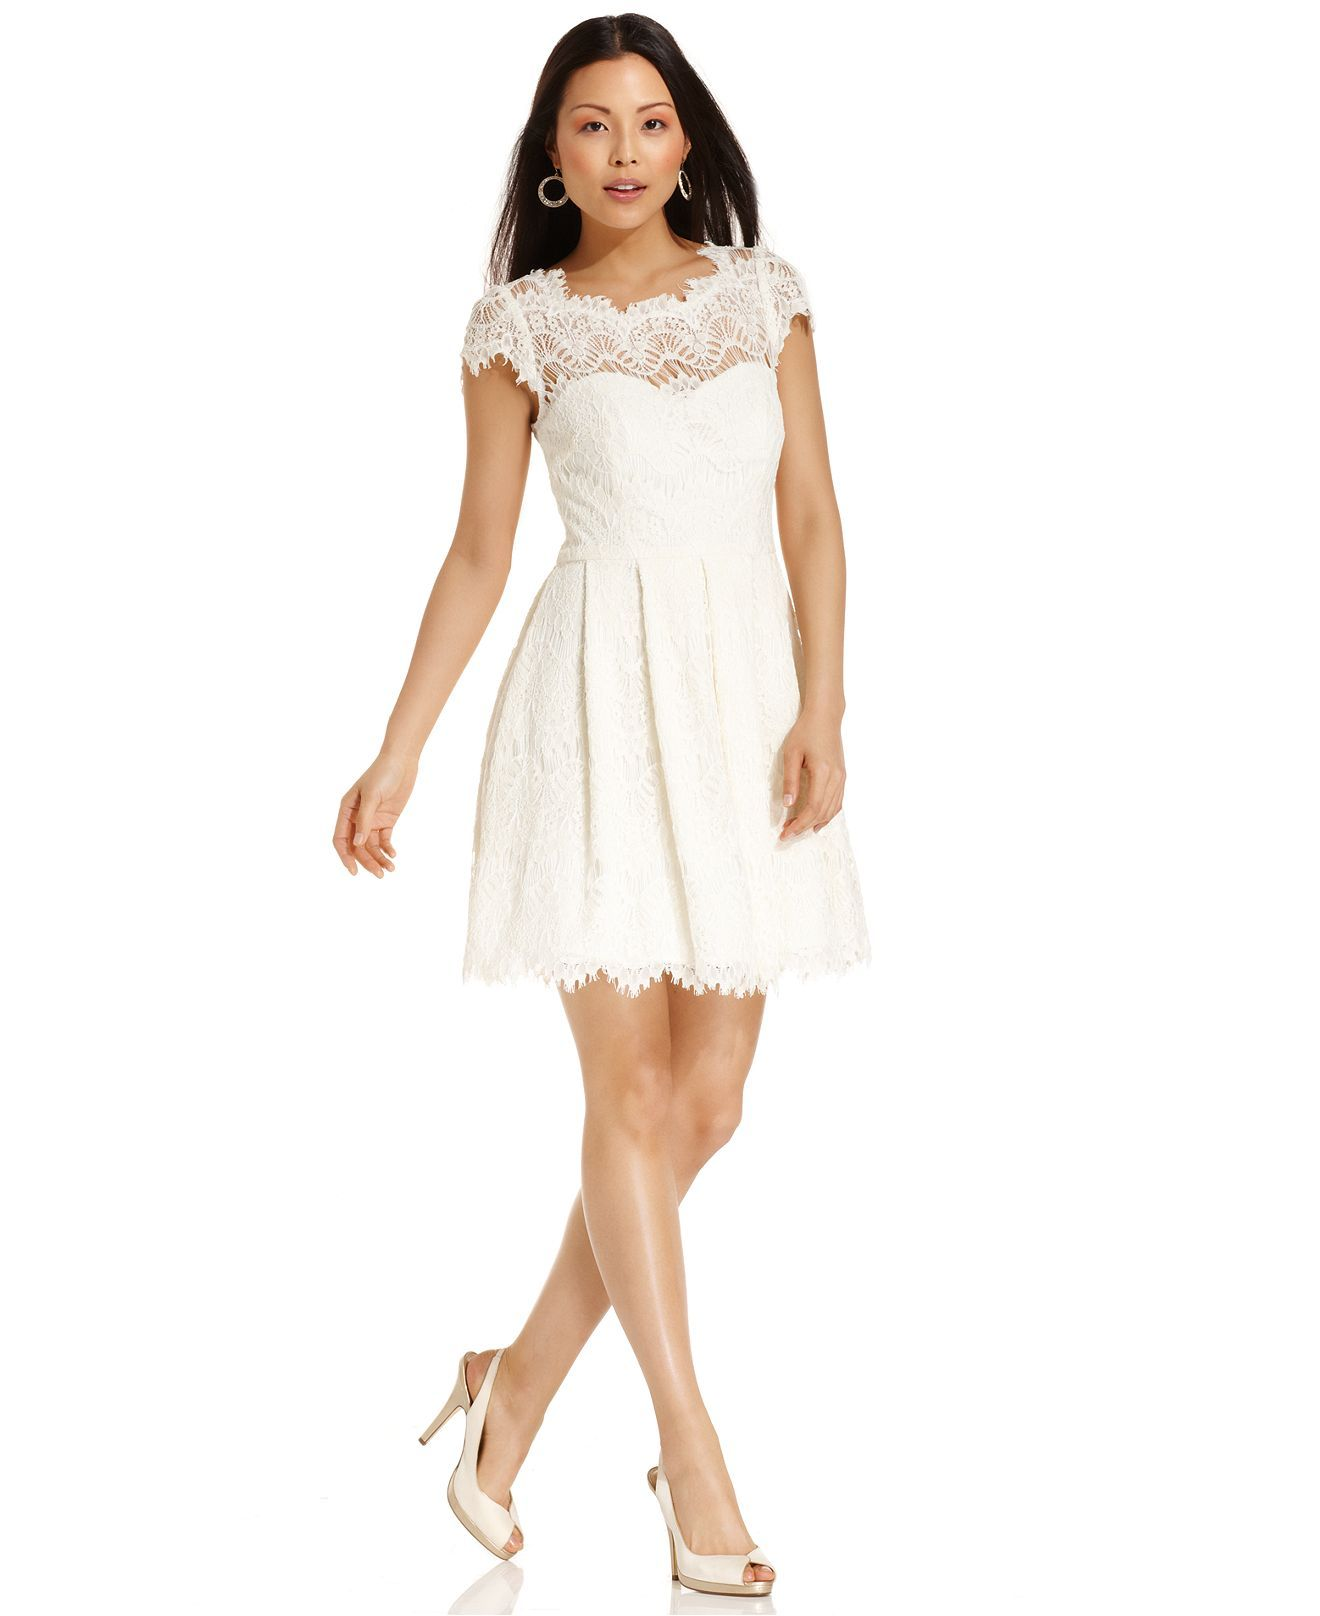 Xscape dress cap sleeve lace white